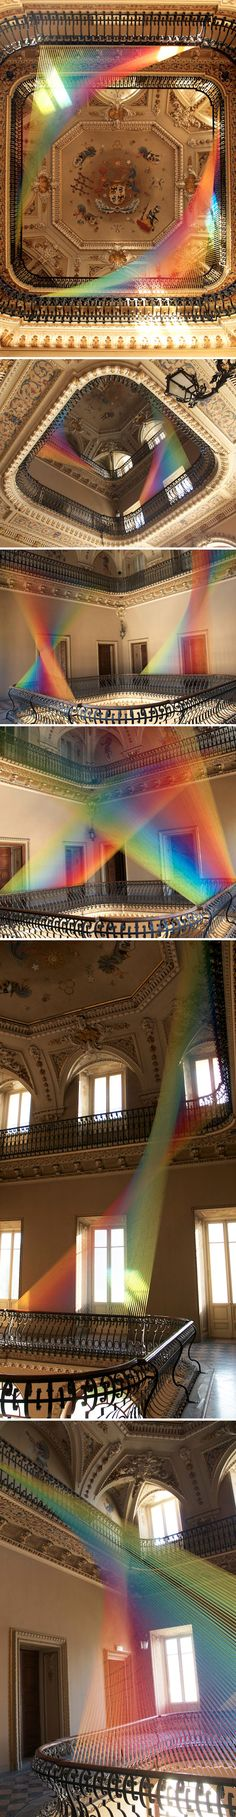 In Como, Italy, this unbelievable thread installation is done by Mexican artist Gabriel Dawe